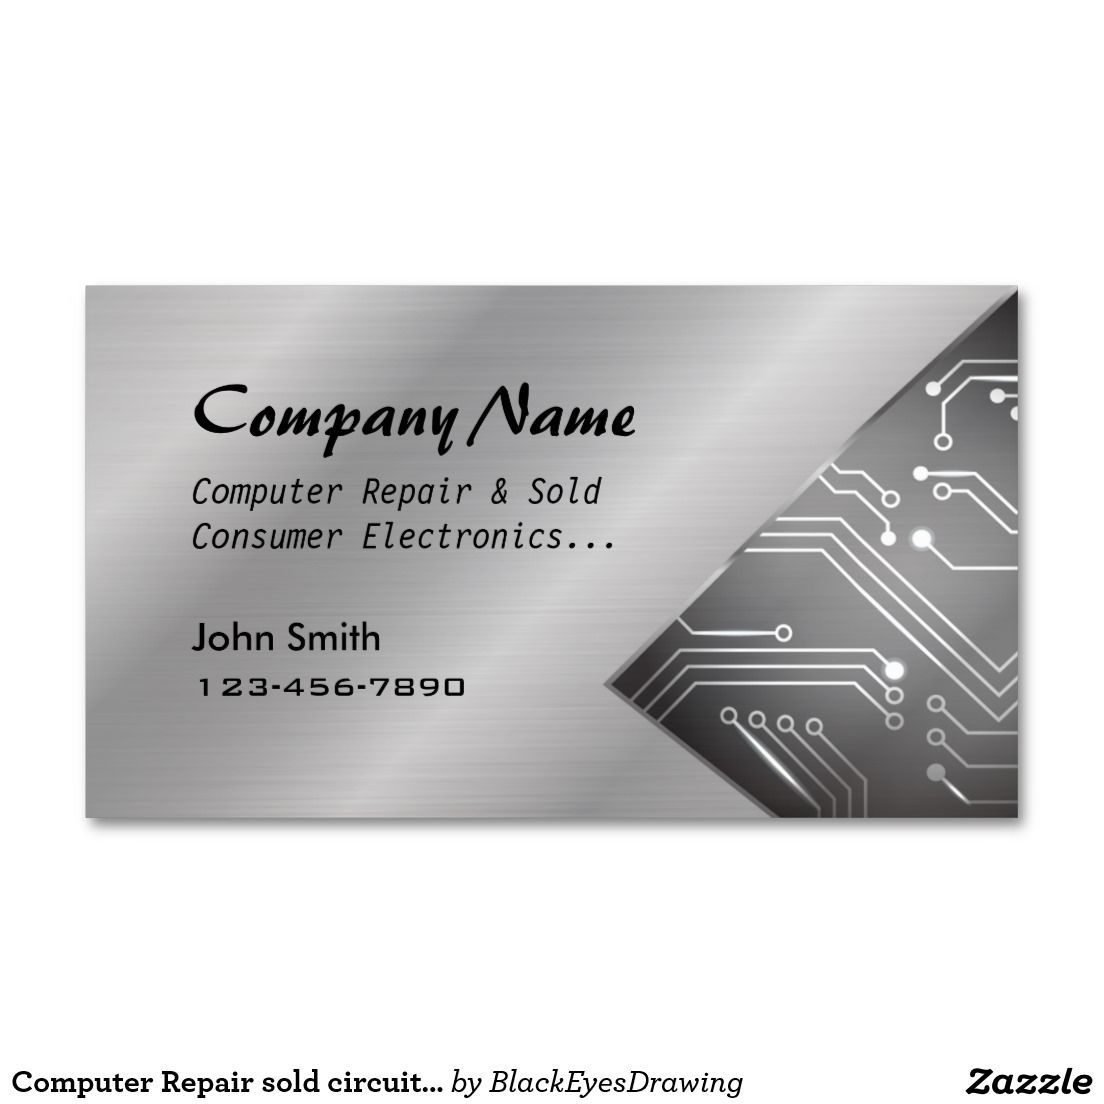 Computer Repair Sold Circuit Board Business Cards Zazzle Com Computer Repair Circuit Board Business Cards